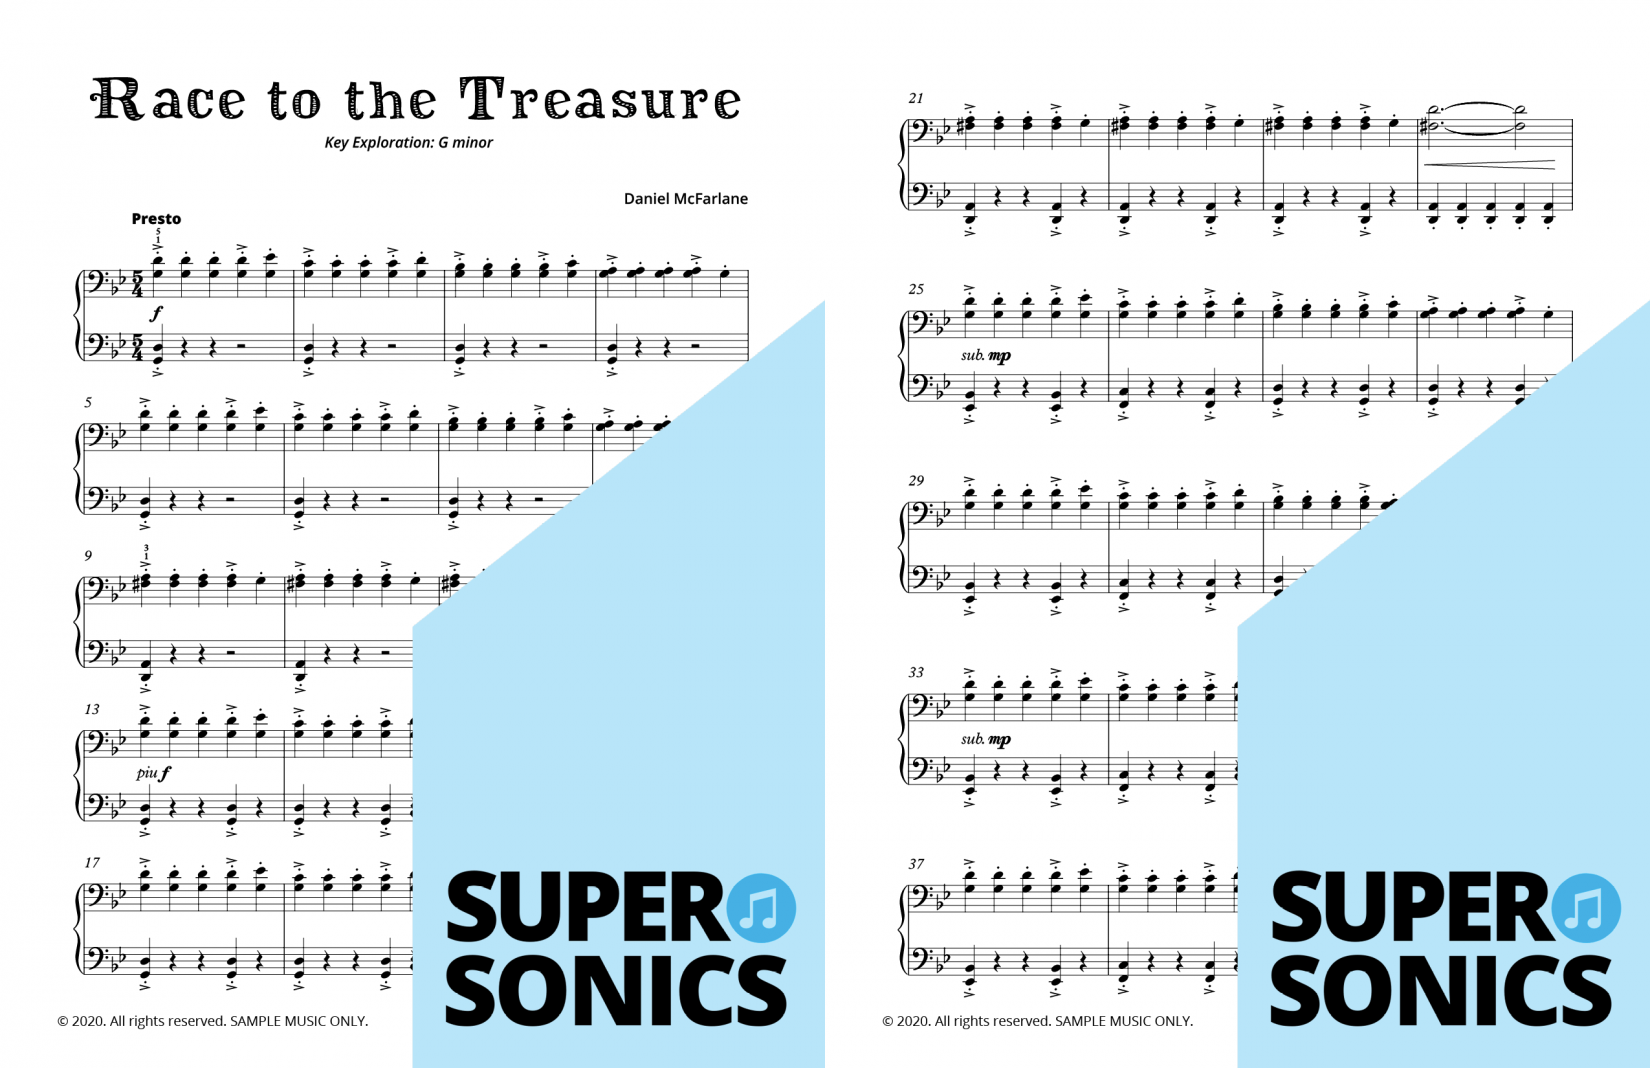 Supersonics Piano Method Level 4 A Pirate's Tale sample